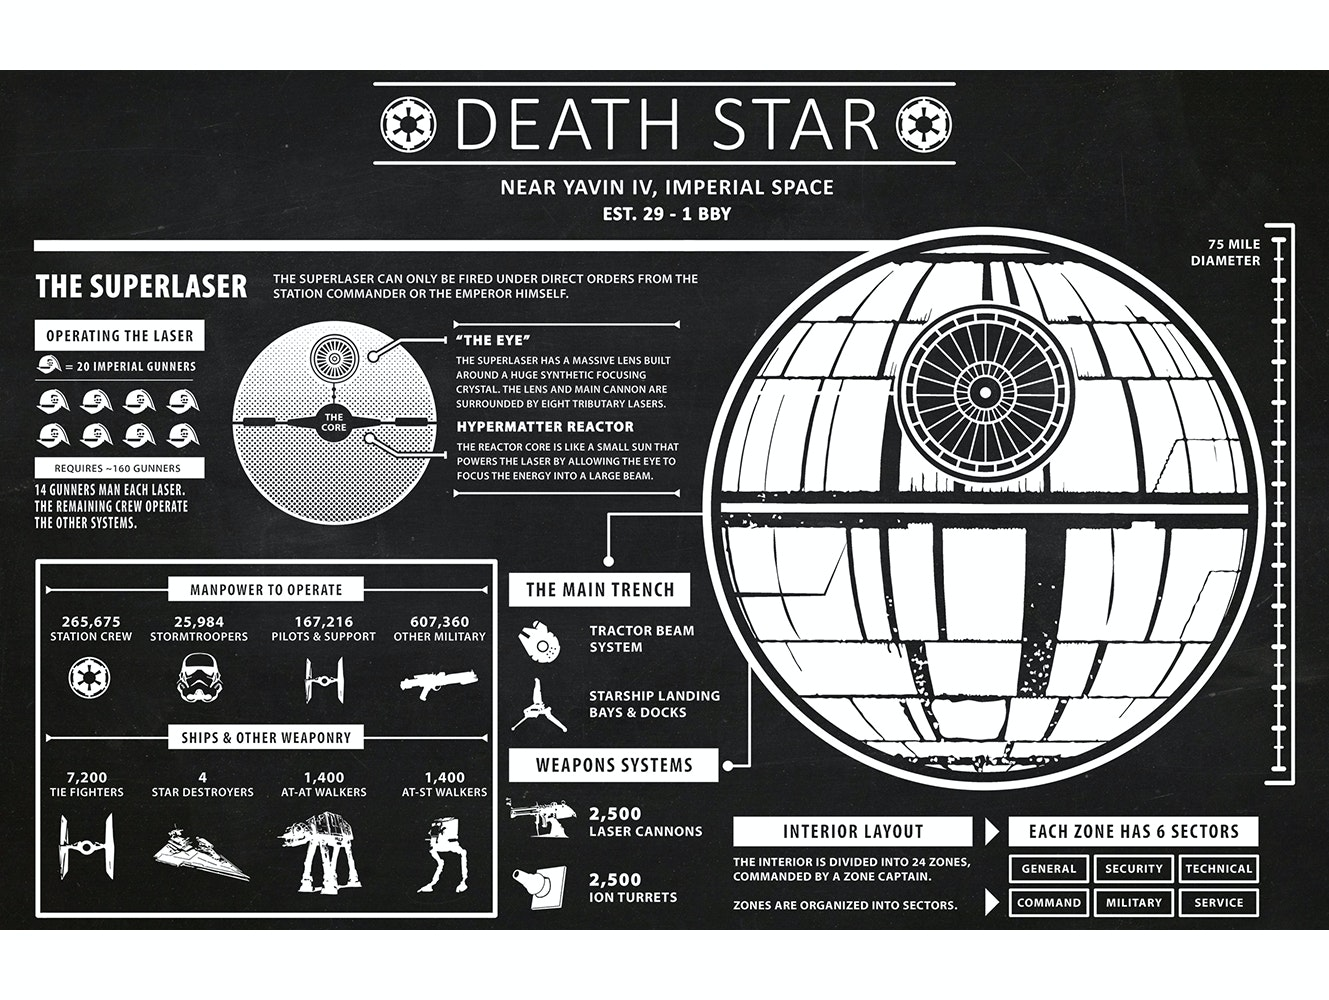 Star Wars - Death Star Infographic